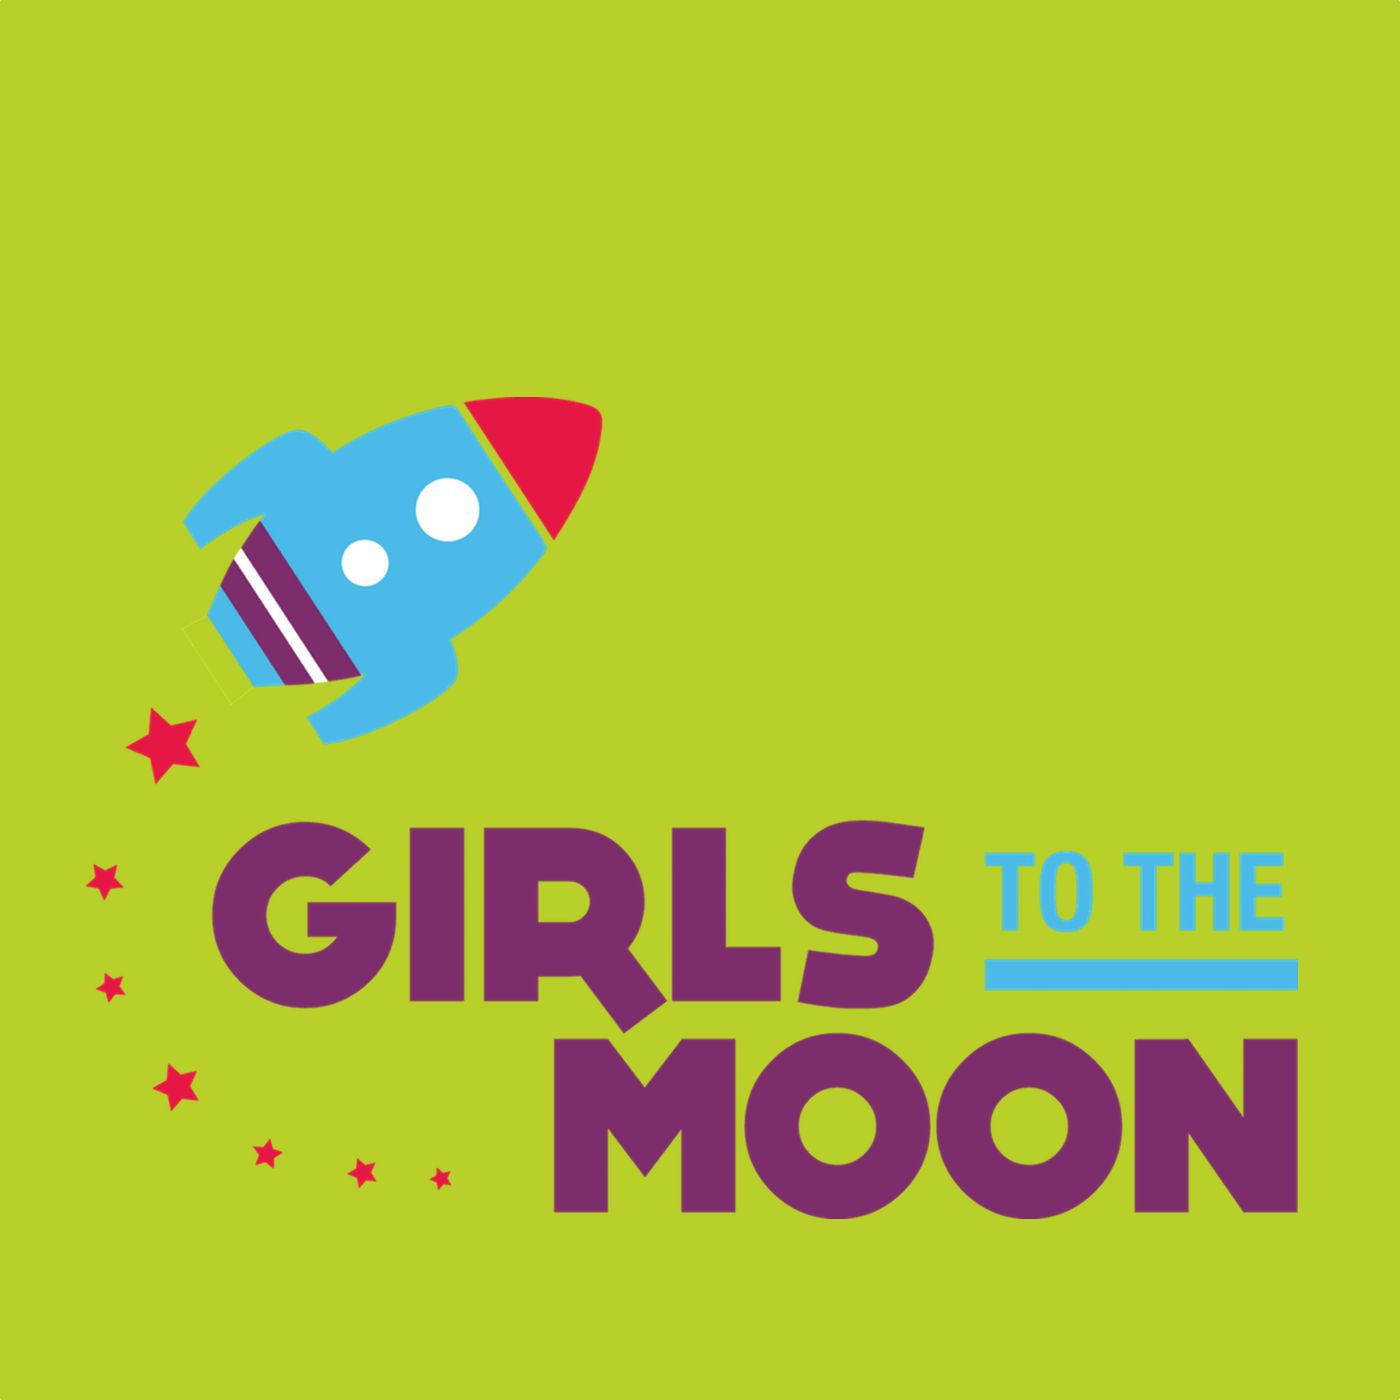 Girls to the Moon